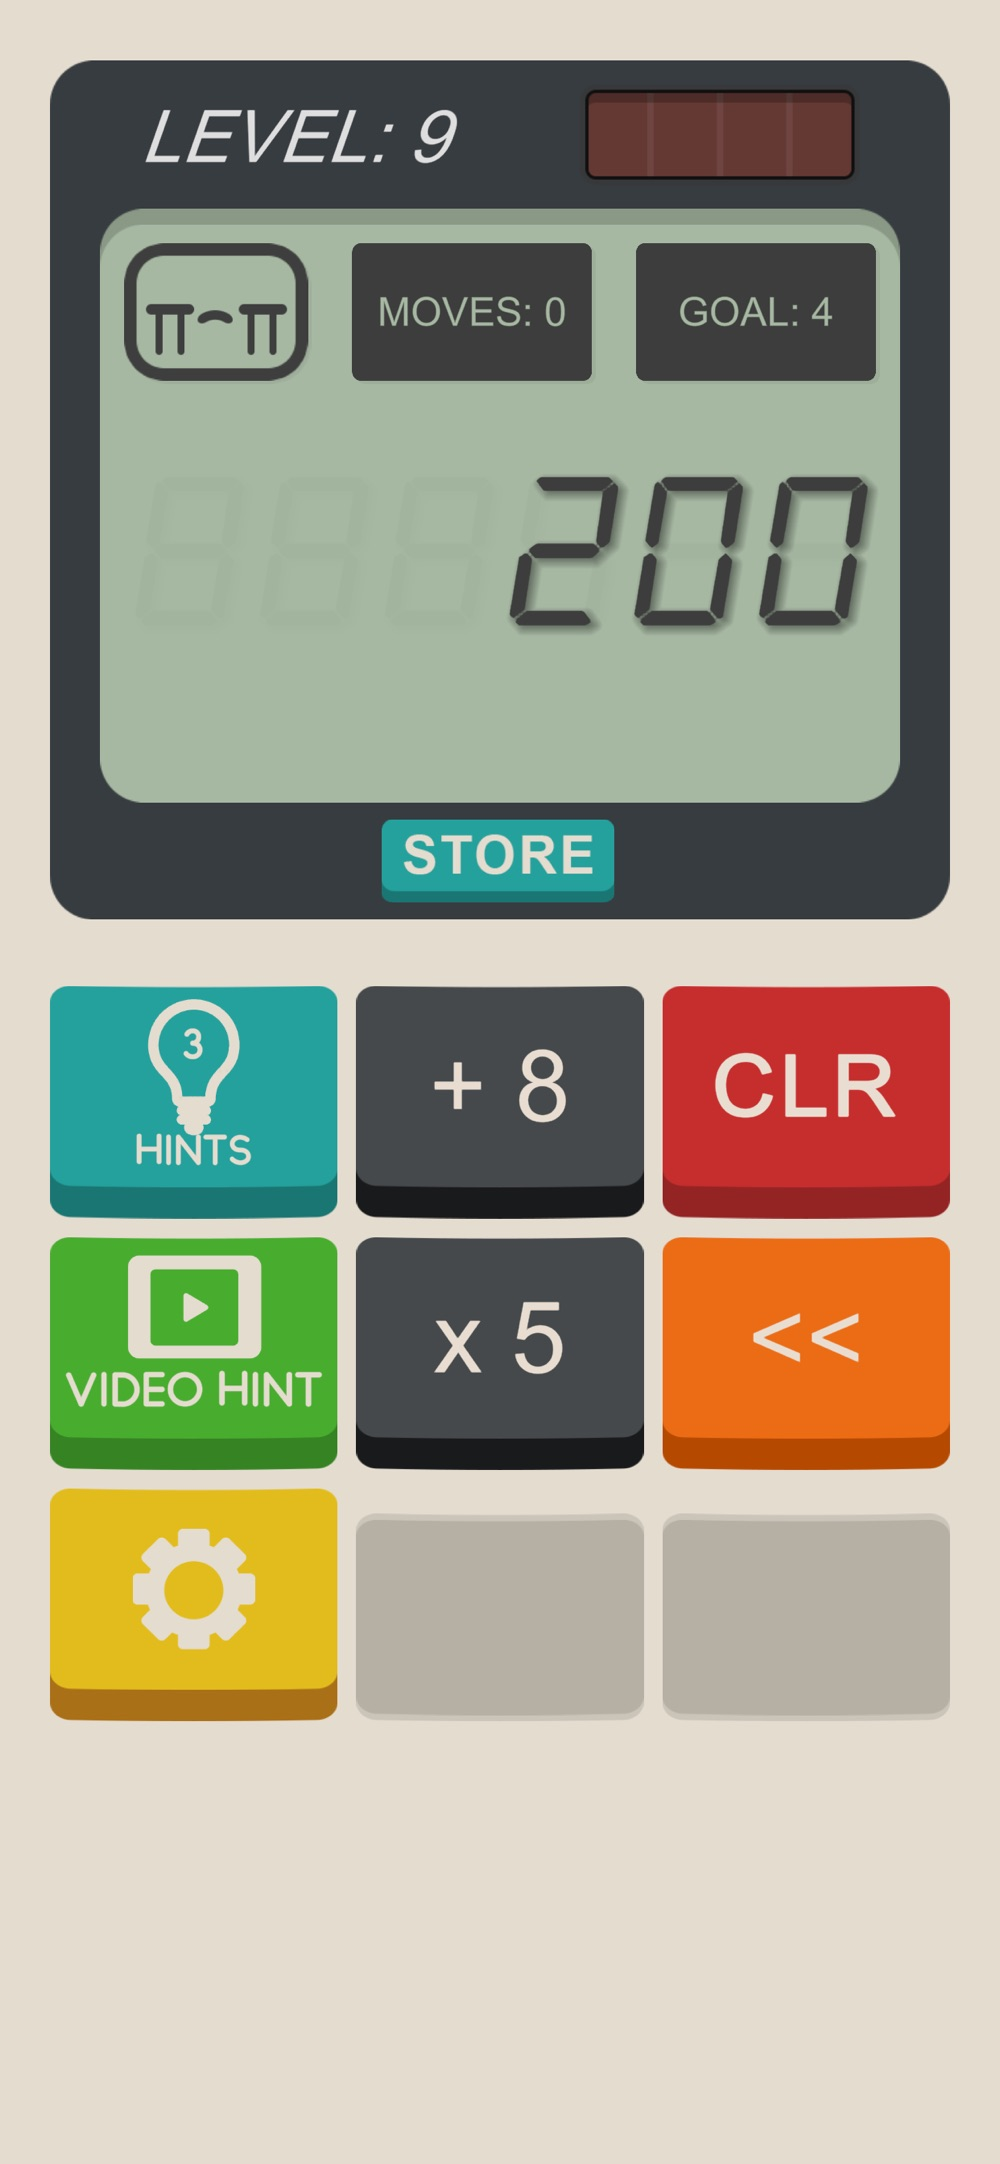 Calculator: The Game hack tool